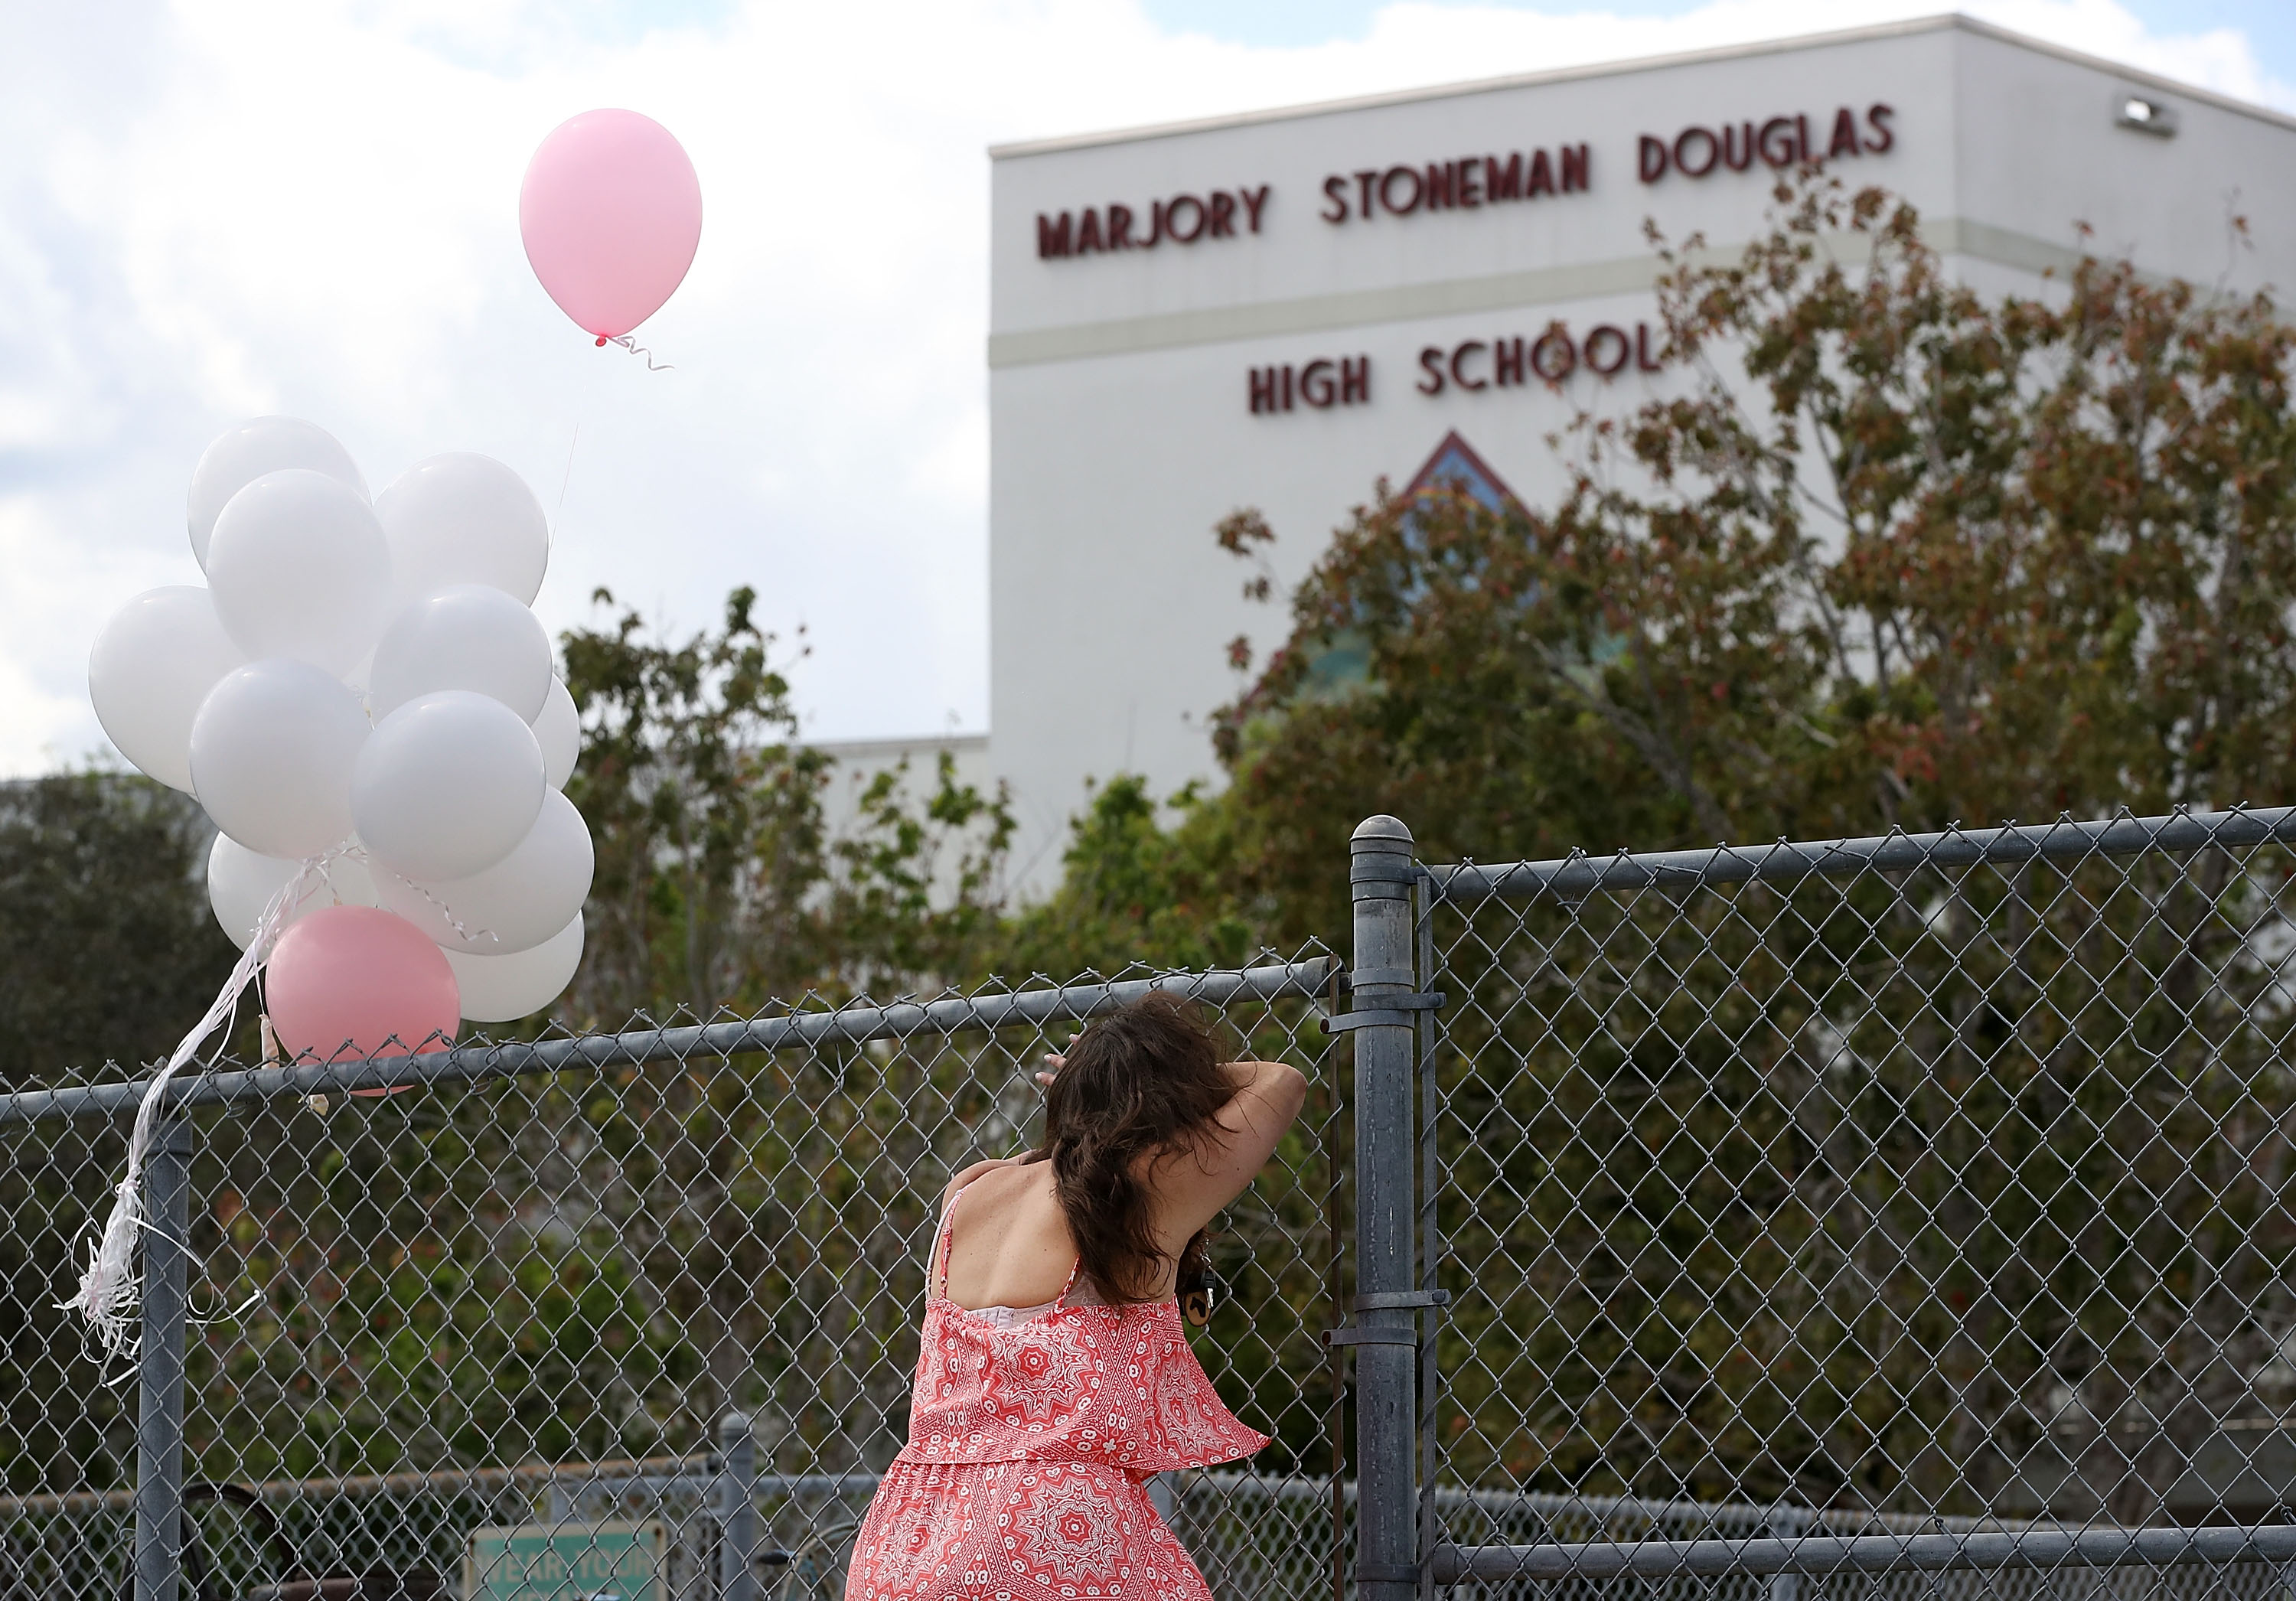 15-Year-Old Anthony Borges Shot Several Times Protecting Classmates During FL School Shooting